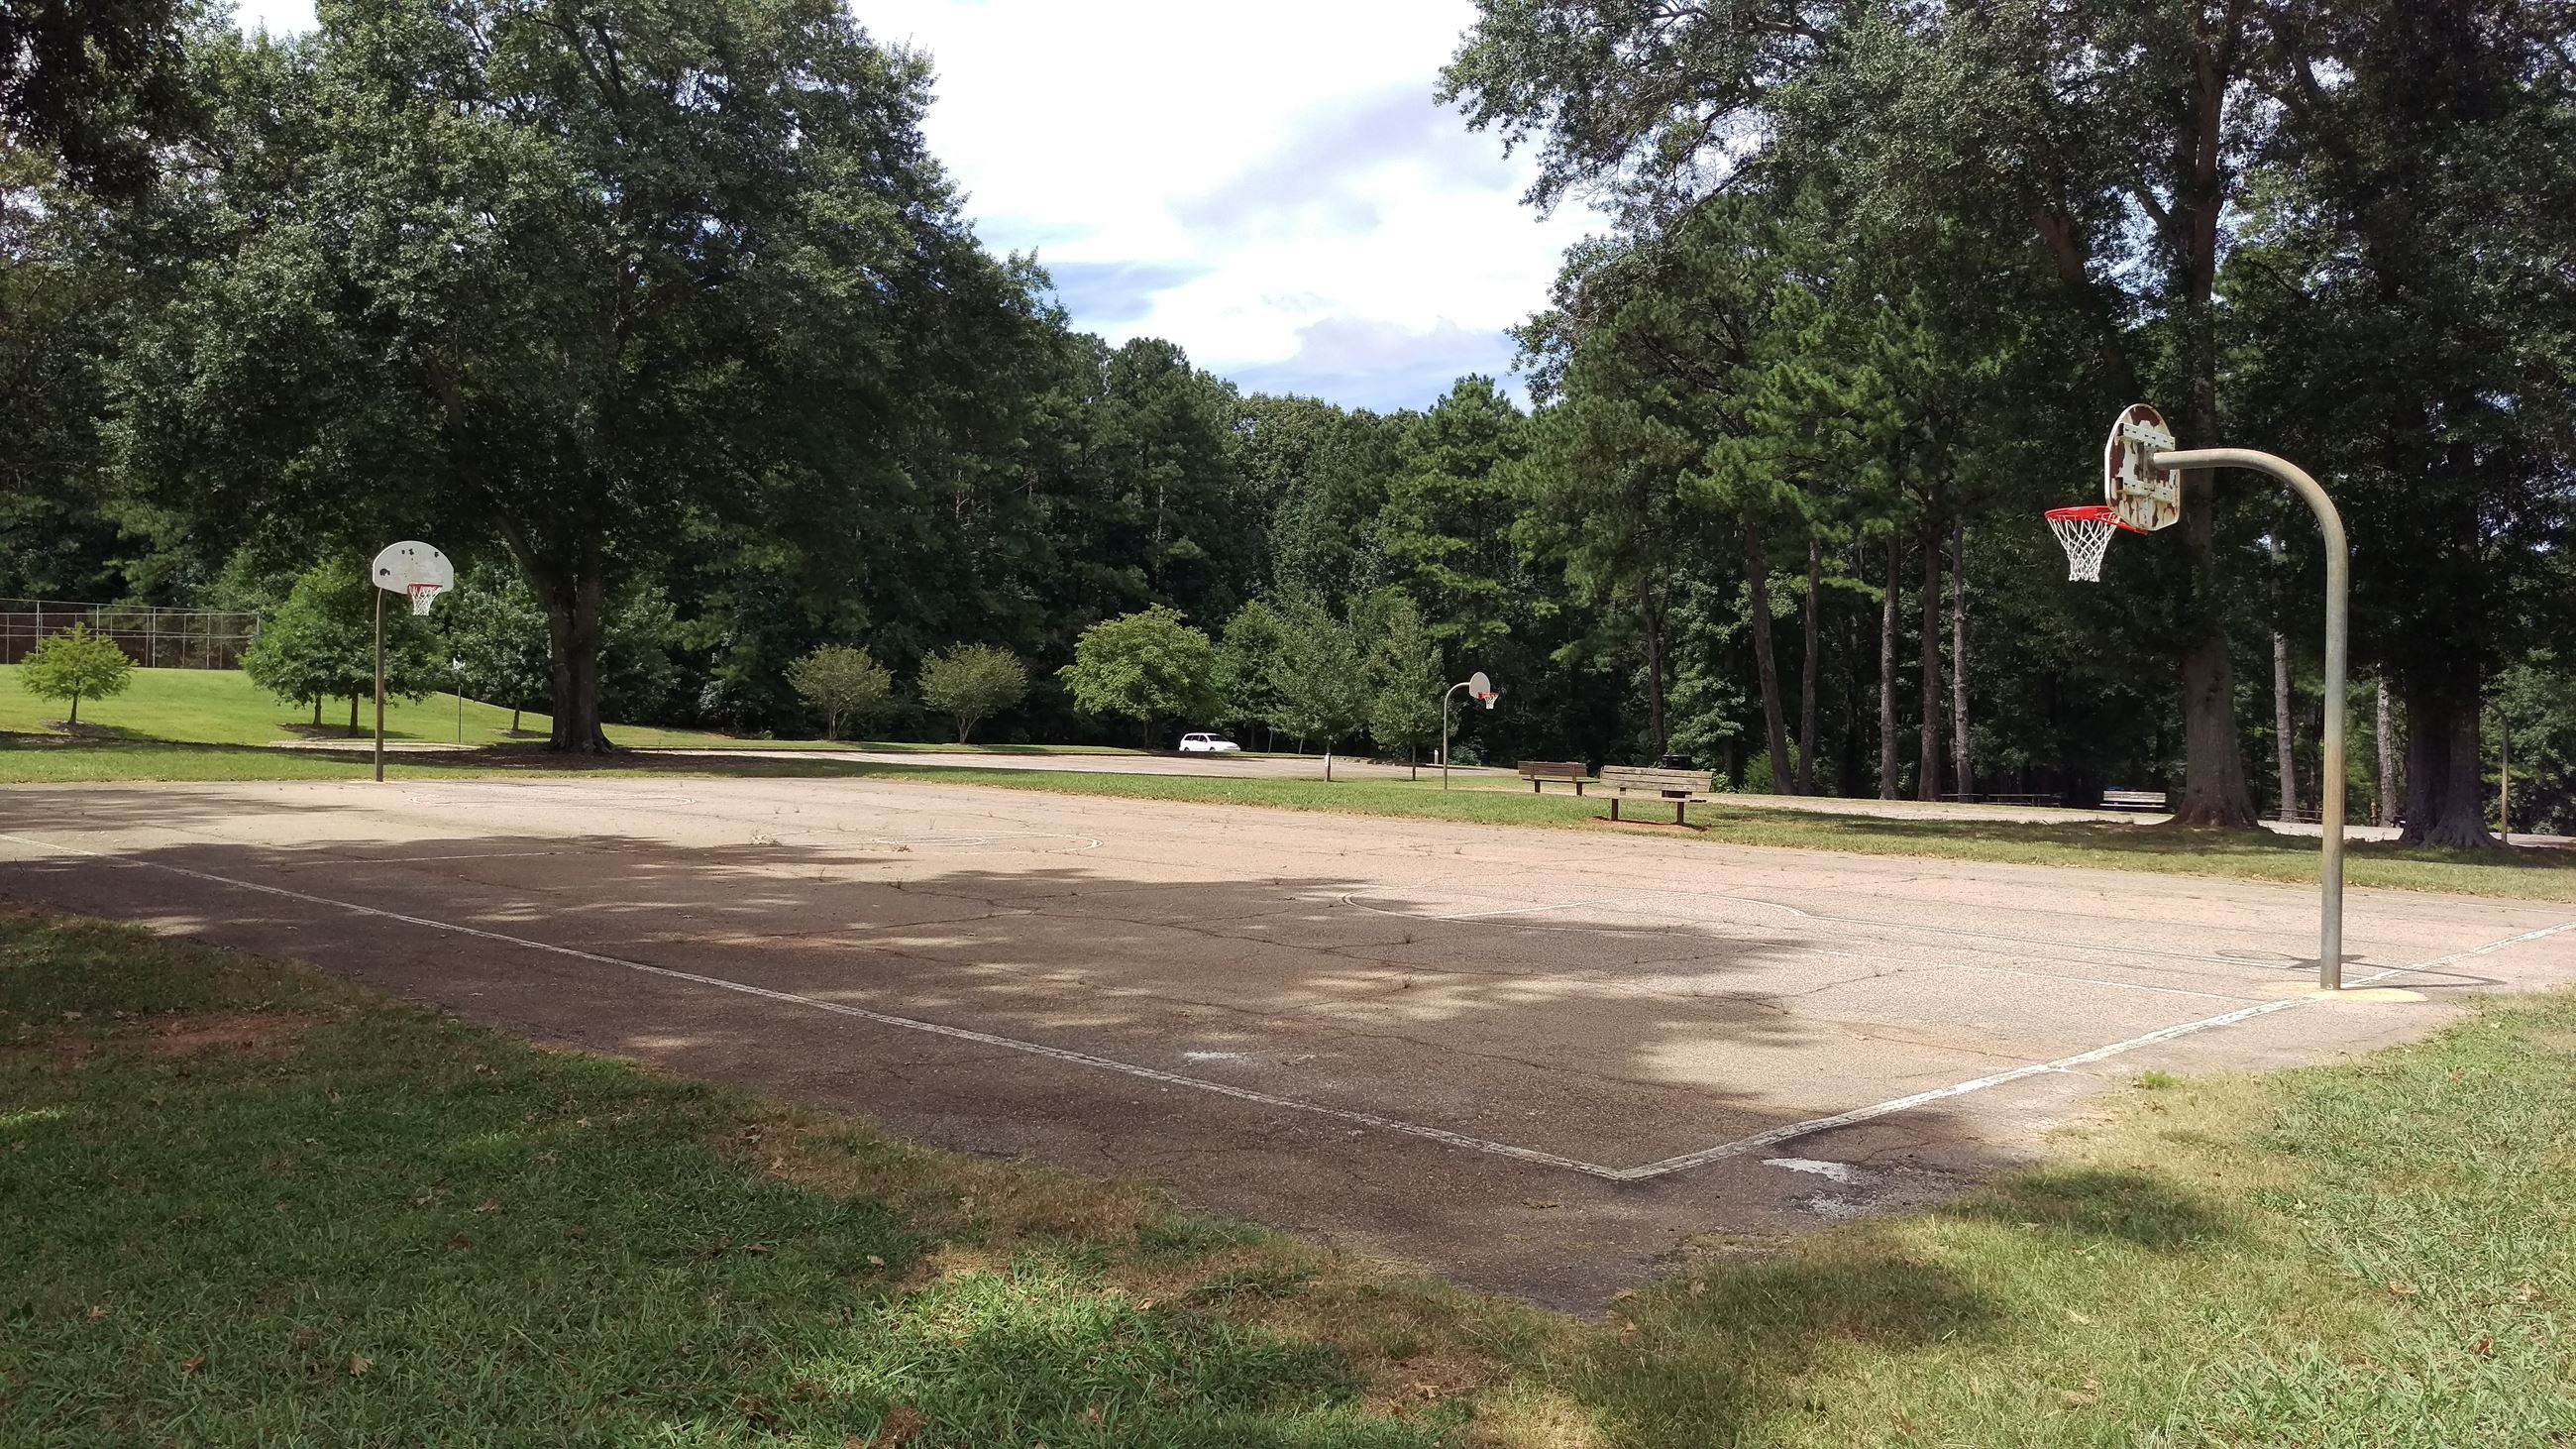 Photo of Basketball Court 1 at Sandy Creek Park.